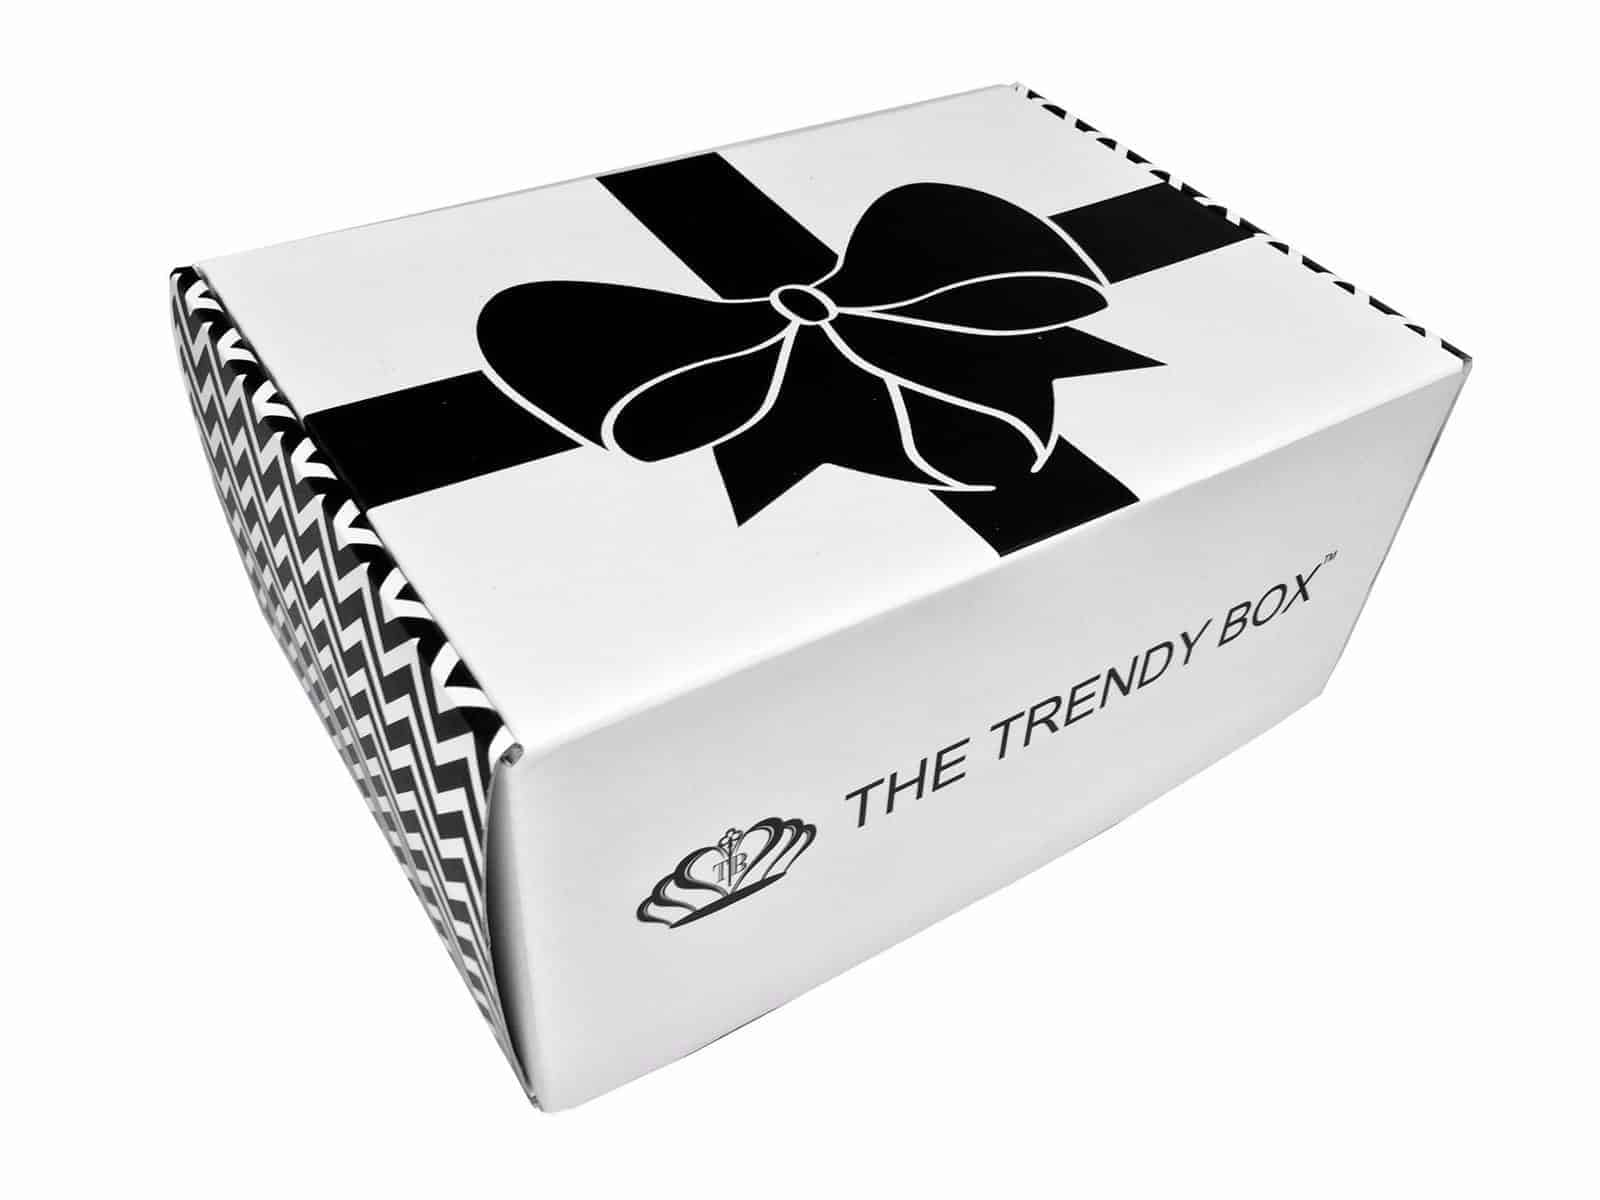 The Trendy Box